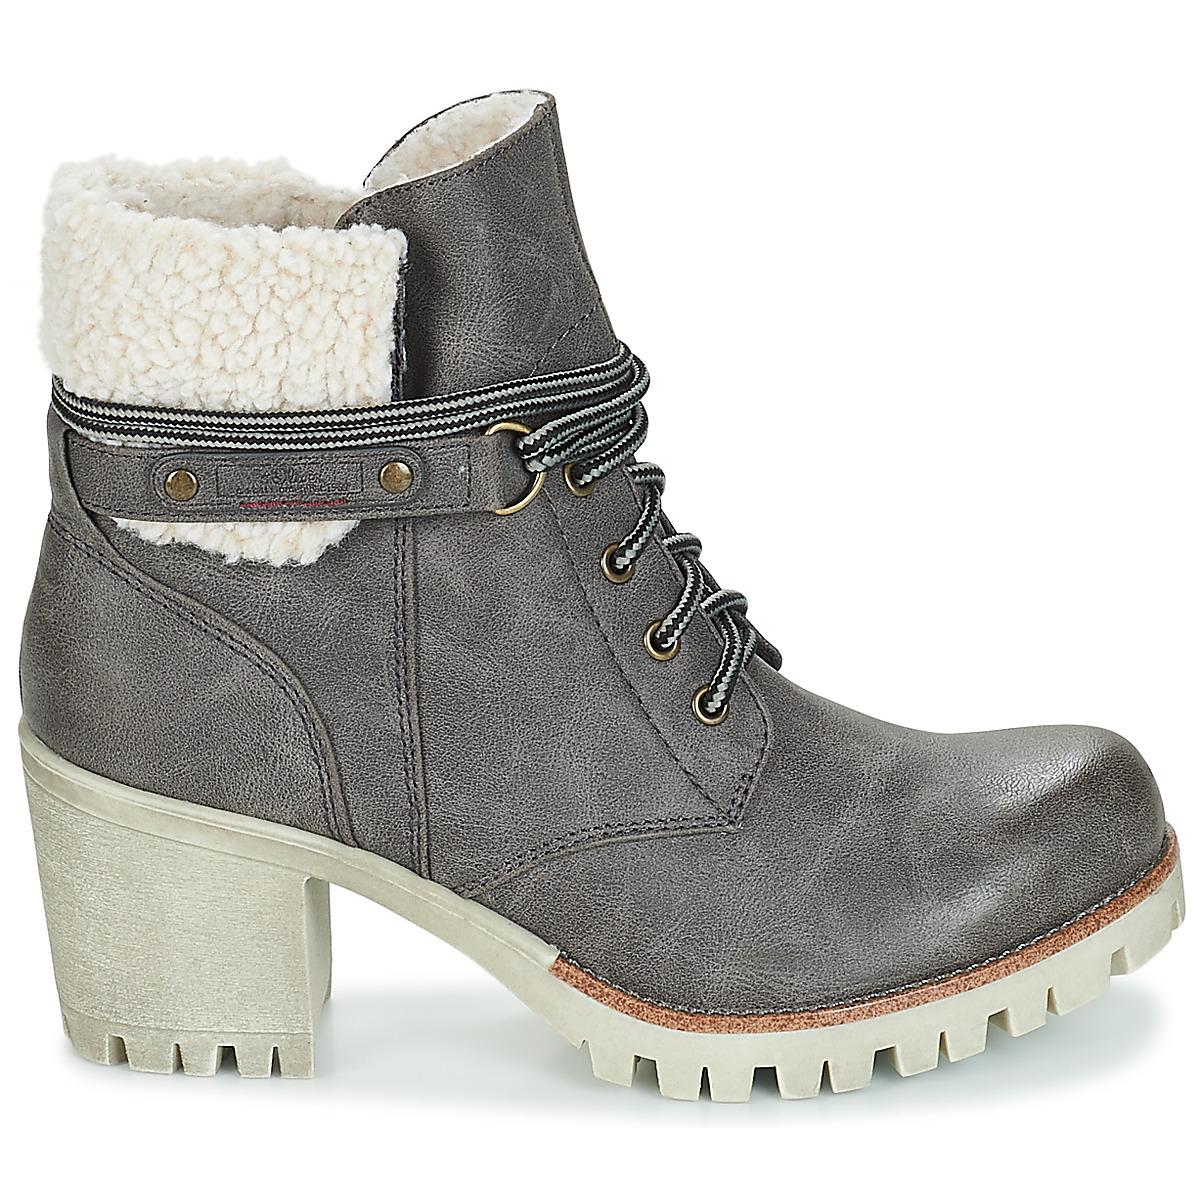 S in Gray Grey Boots Oliver Women's Ankle Koper Low Lyst In xrxw8Hqz